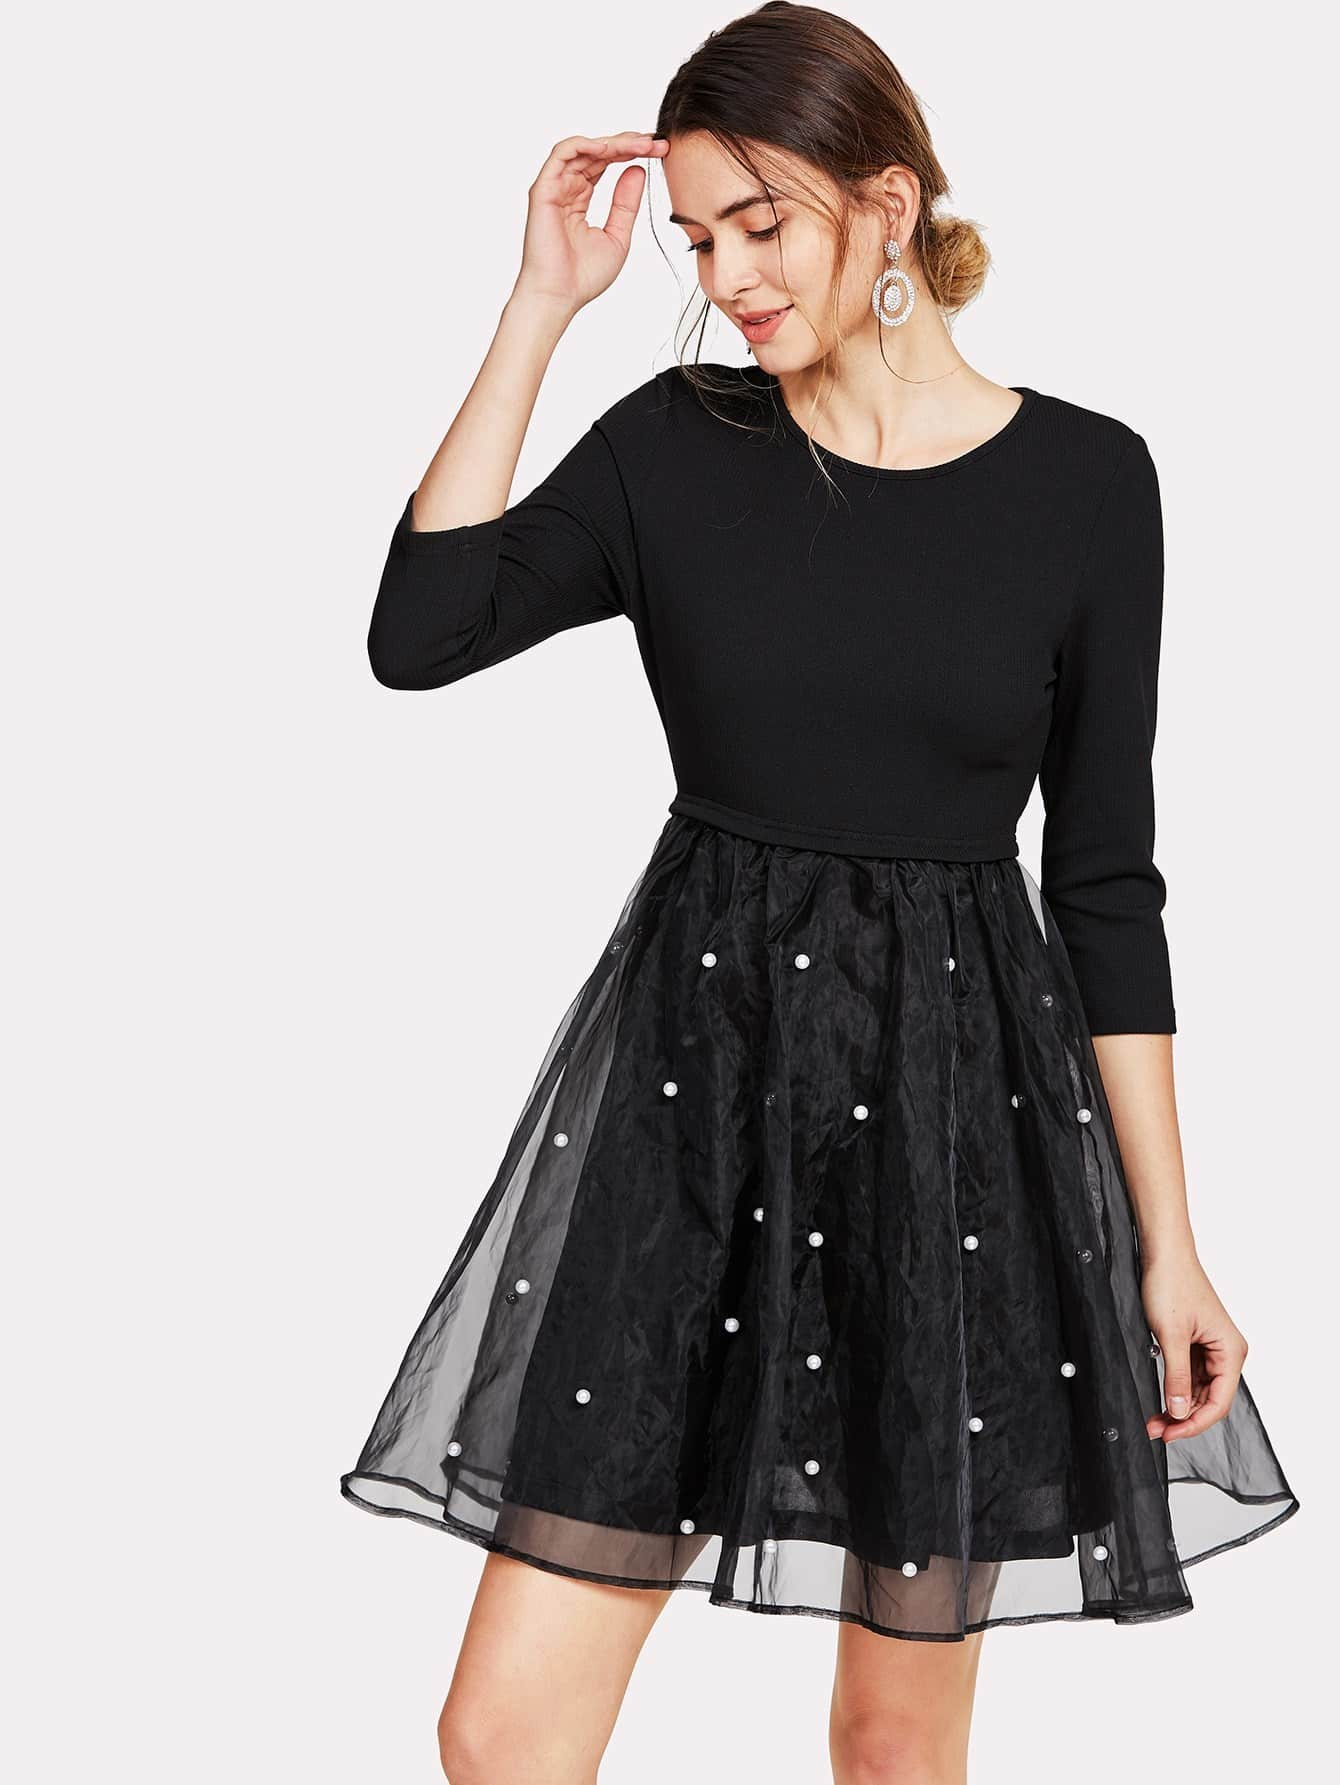 Pearl Beaded Mesh Overlay Fit & Flare Dress lace overlay fit and flare dress